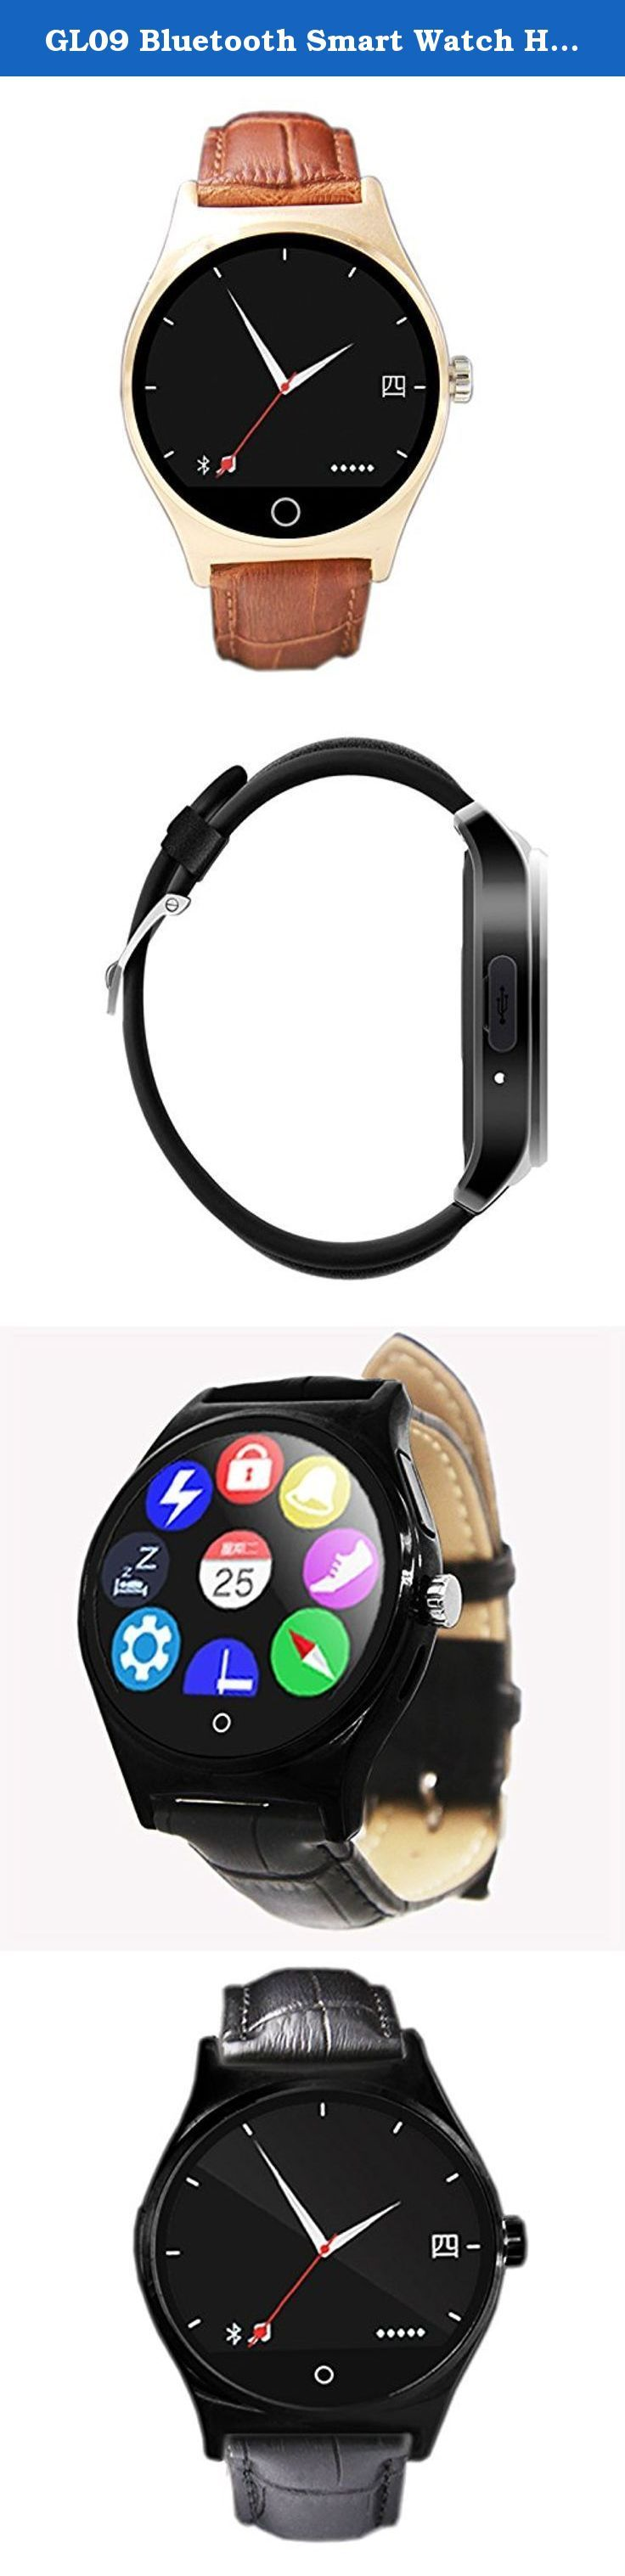 GL09 Bluetooth Smart Watch Heart Rate Watch Wristwatch Waterproof IP67 For IOS And Android. GL09 Bluetooth Smart Watch Heart Rate Watch Wristwatch Waterproof IP67 For IOS And Android This is a round screen Bluetooth Smart Watch Heart Rate Watch which is perfect compatible with bluetooth 4.0. It is support for IOS 7.0 and above,Android 4.3 and above . This Watch has many functions,such as:Heart Rate Monitor,Pedometer,Sleeping monitor,Remote camera,Infrared remote control and so on. if you...